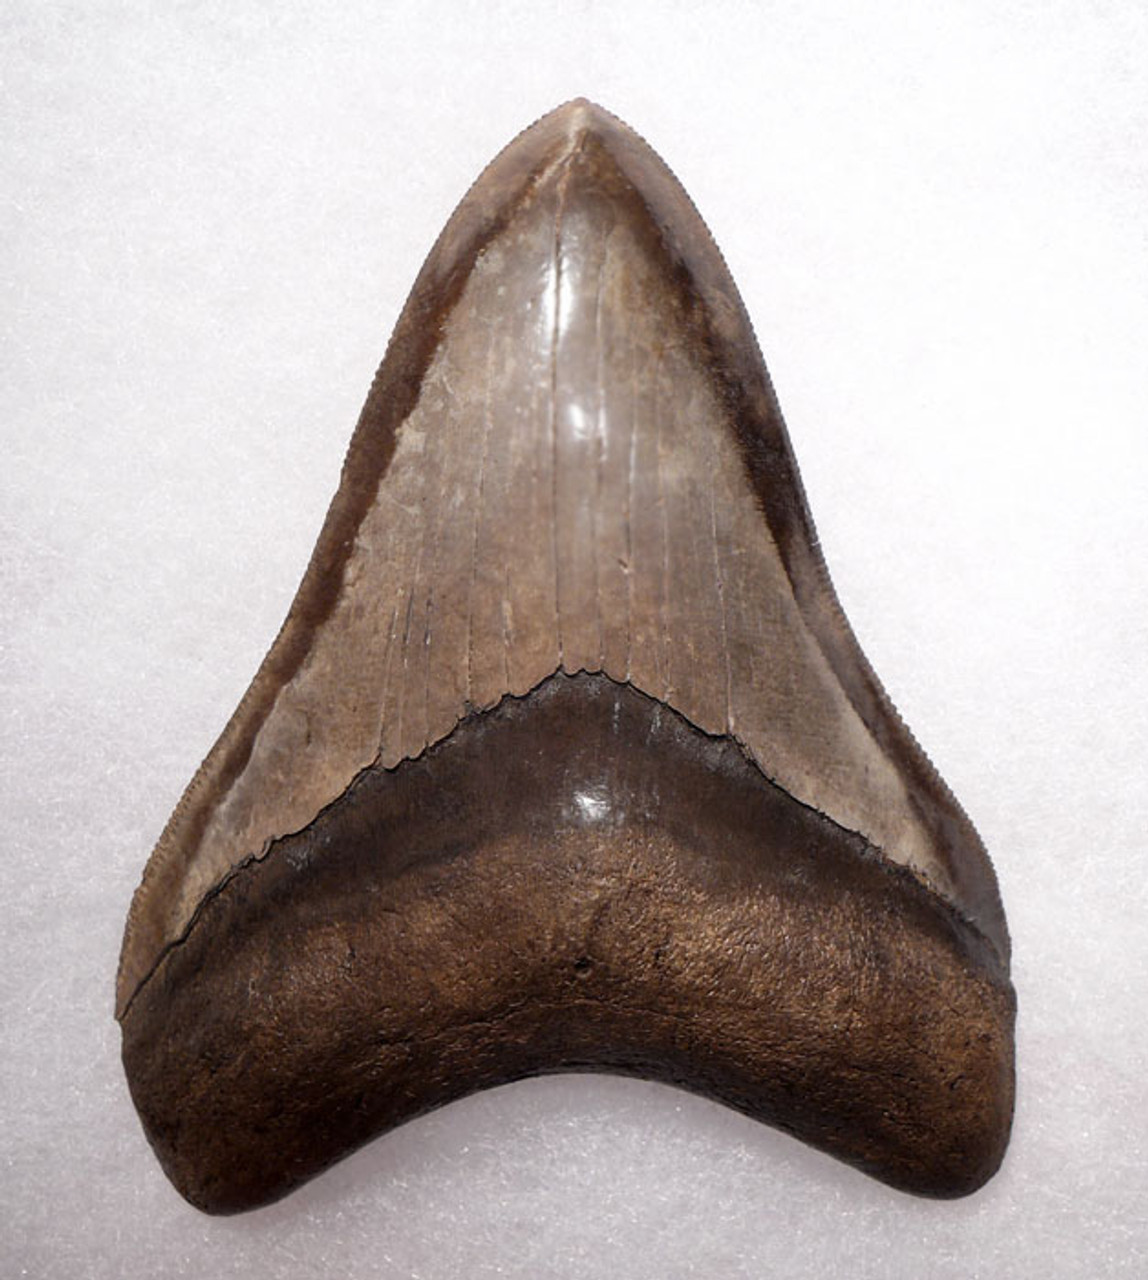 SH6-292 - COLLECTOR GRADE SPOTTED SILVER BRONZE 4.1 INCH MEGALODON SHARK TOOTH